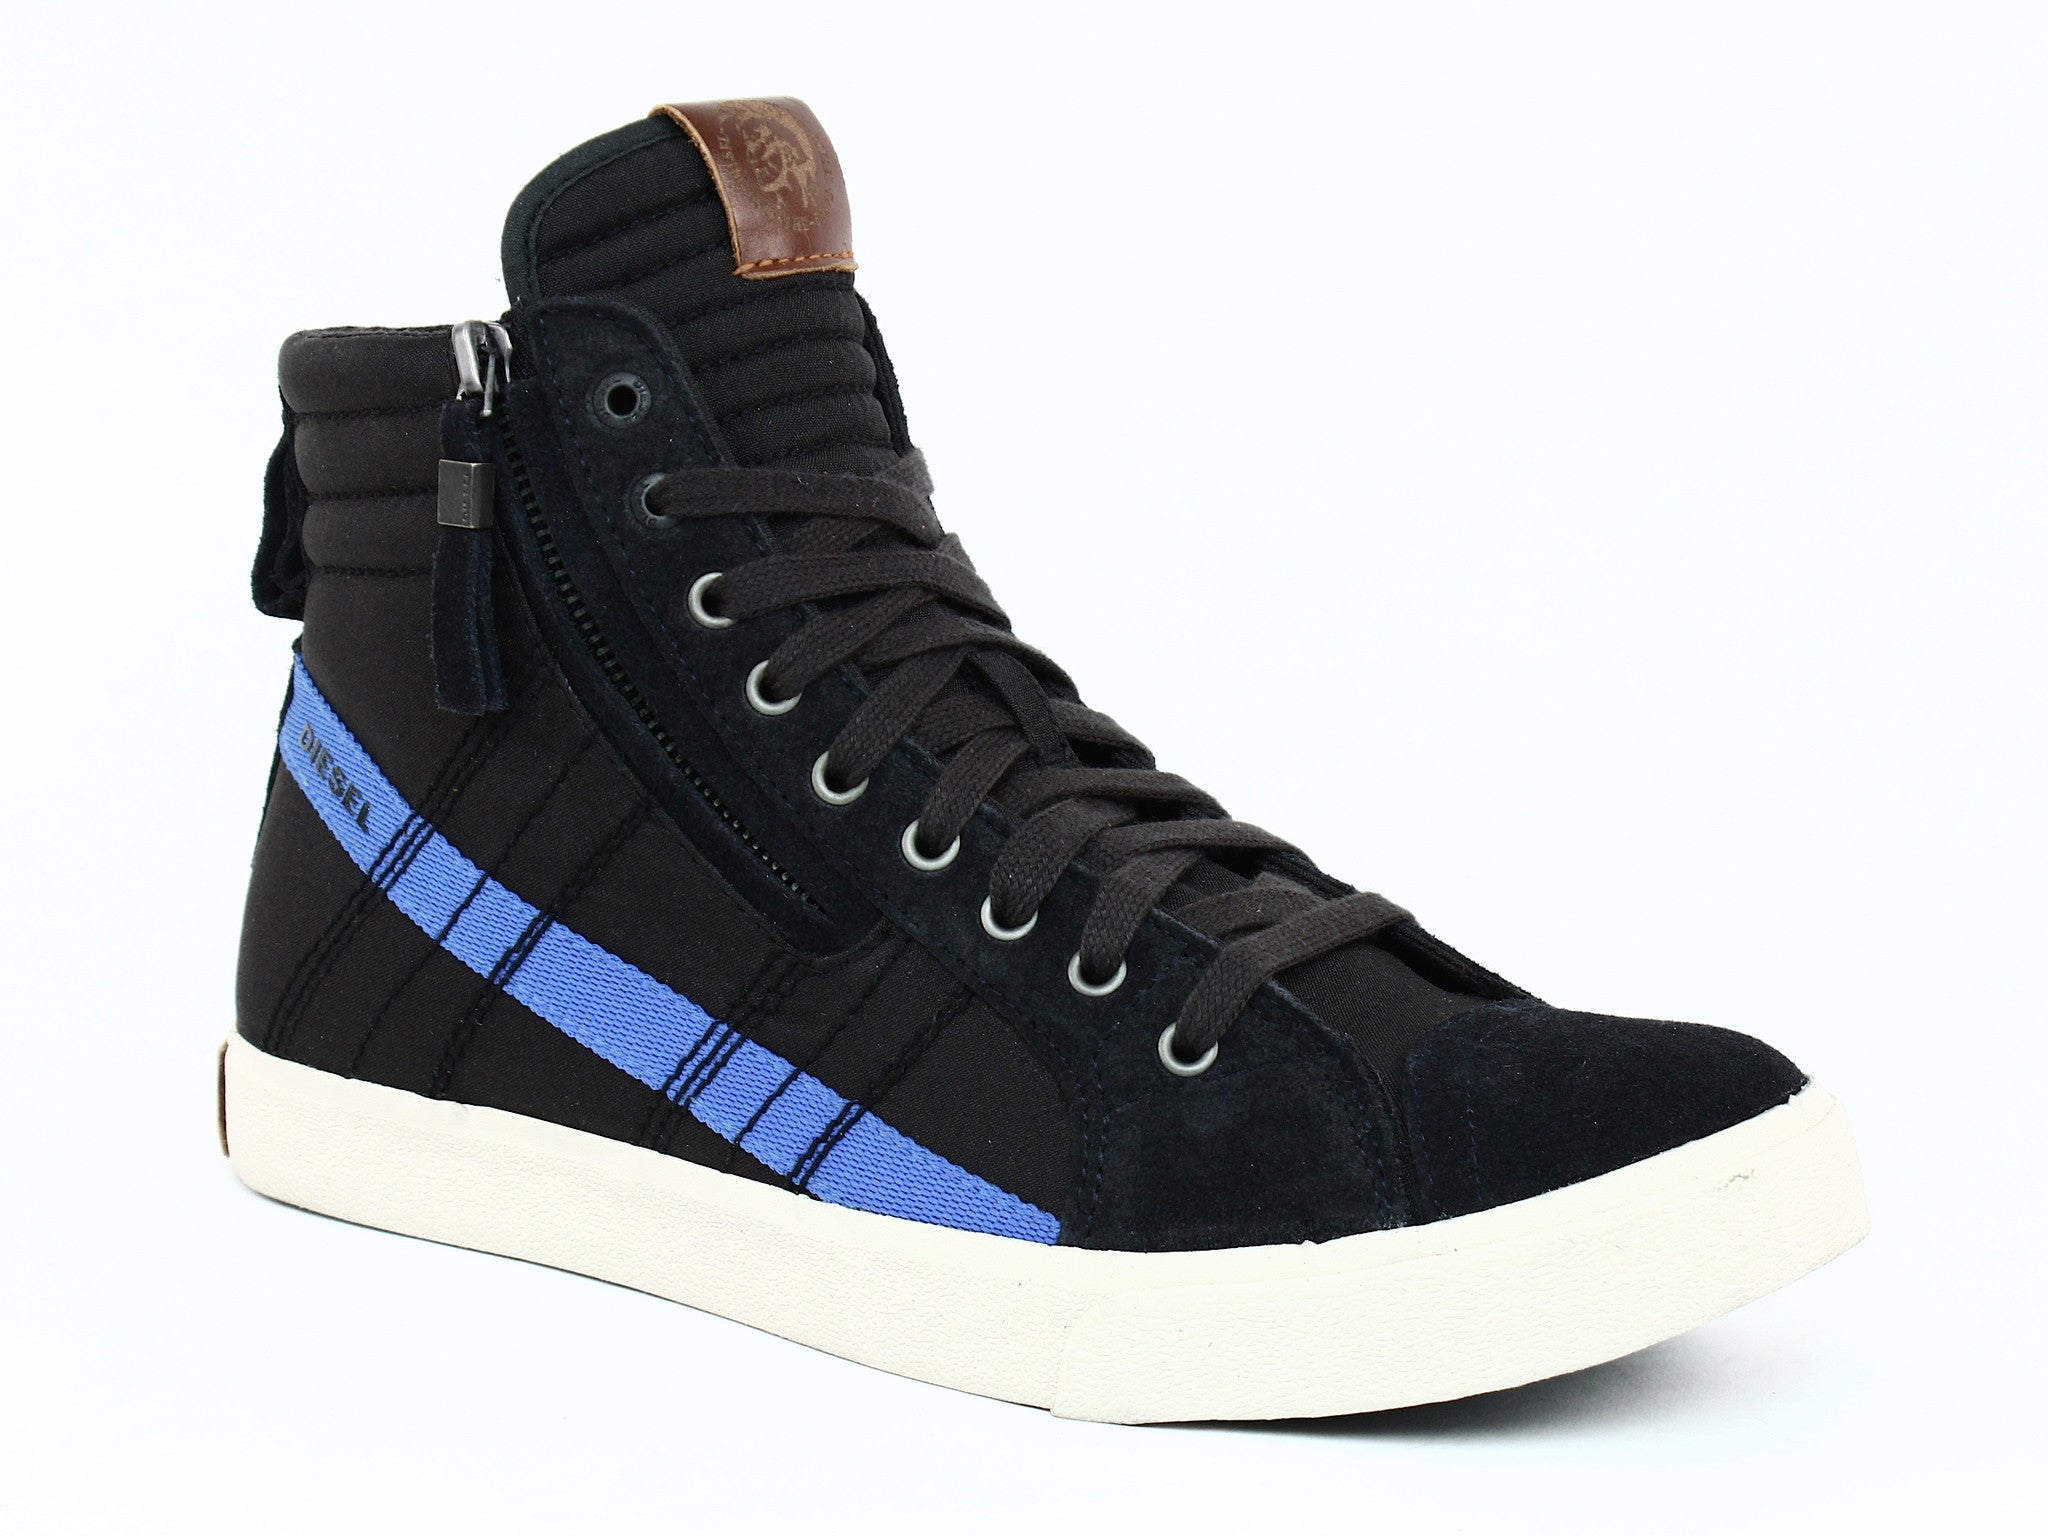 Diesel D-STRING Men's High Tops Casual Fashion Sneakers Anthracite Nautical